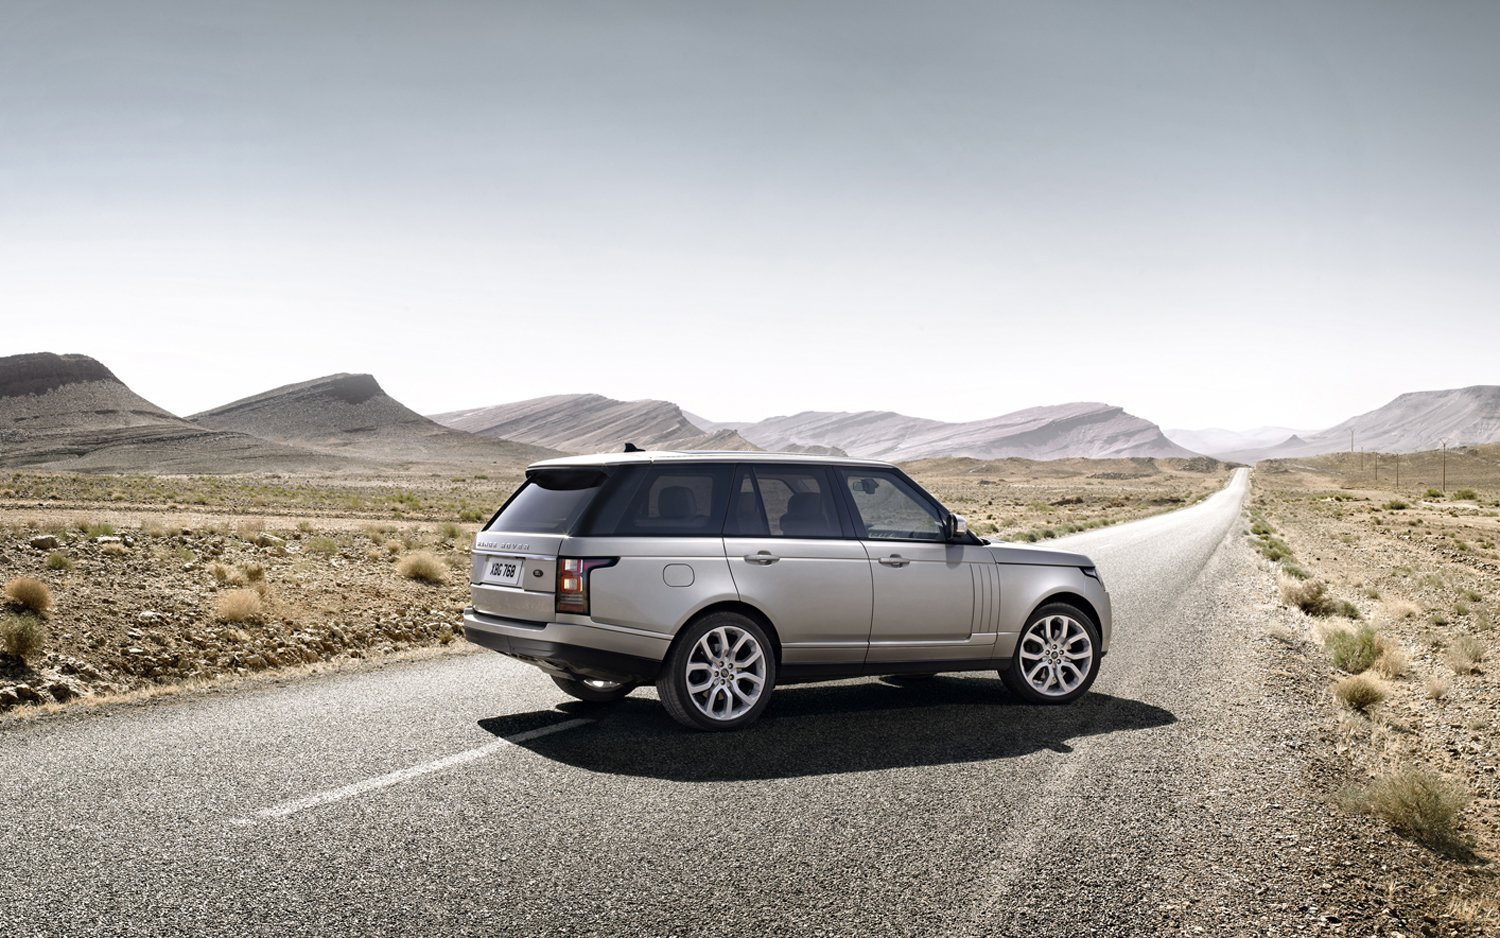 New Land Rover Range Rover Hd Wallpapers New Cars Reviews On This Month